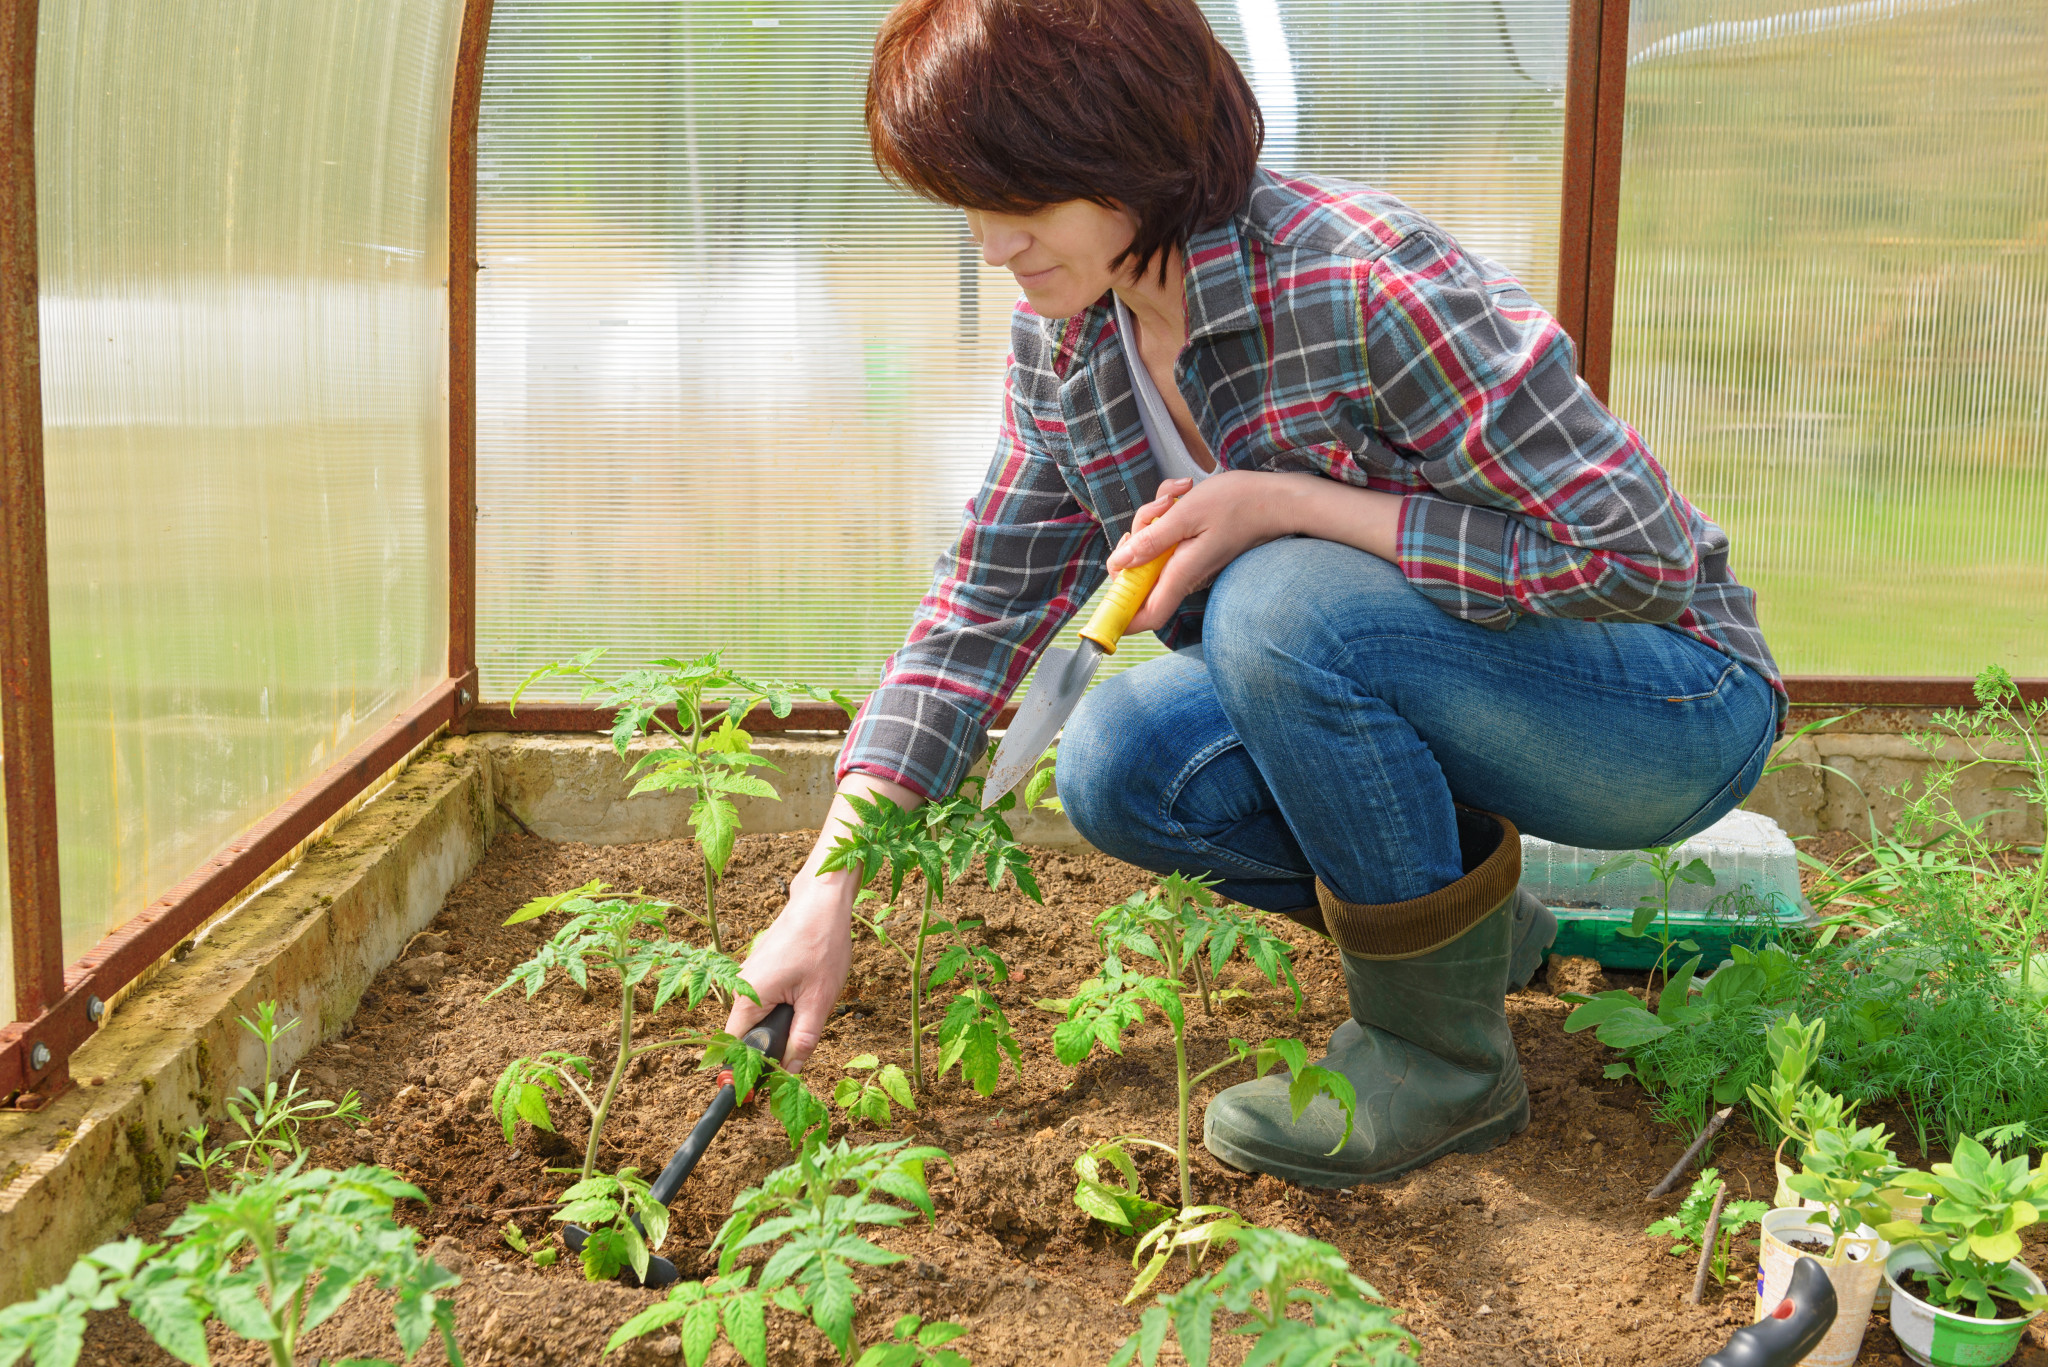 Woman works in the greenhouse, grows up young seedling of tomatoes